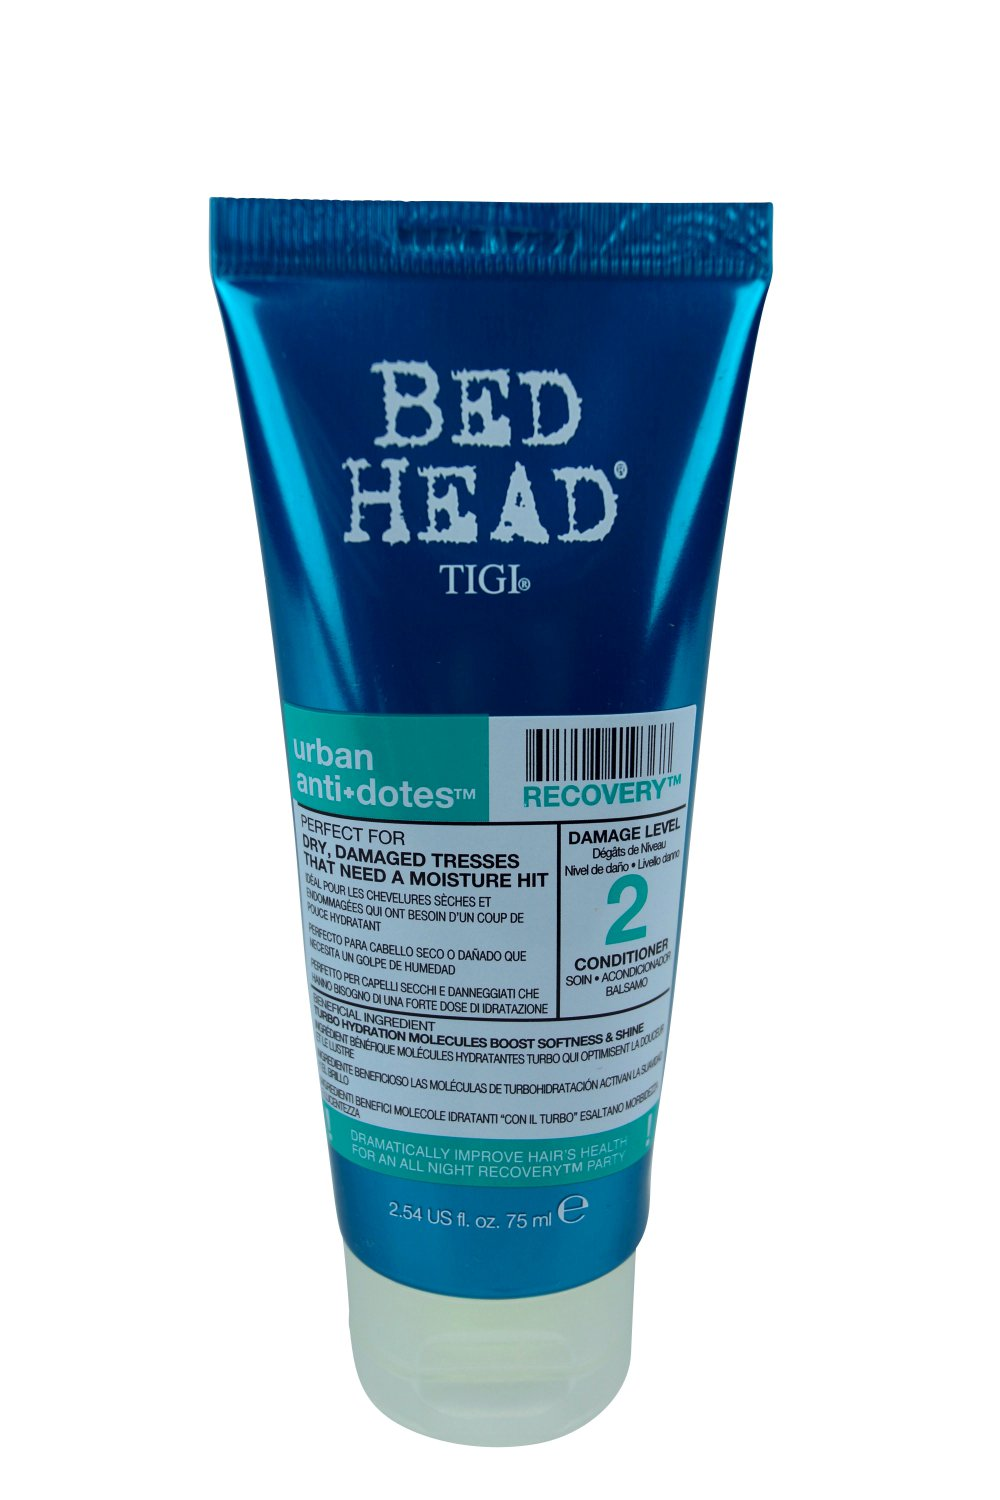 Tigi Bed Head Urban Antidotes Recovery Conditioner 2.54 oz